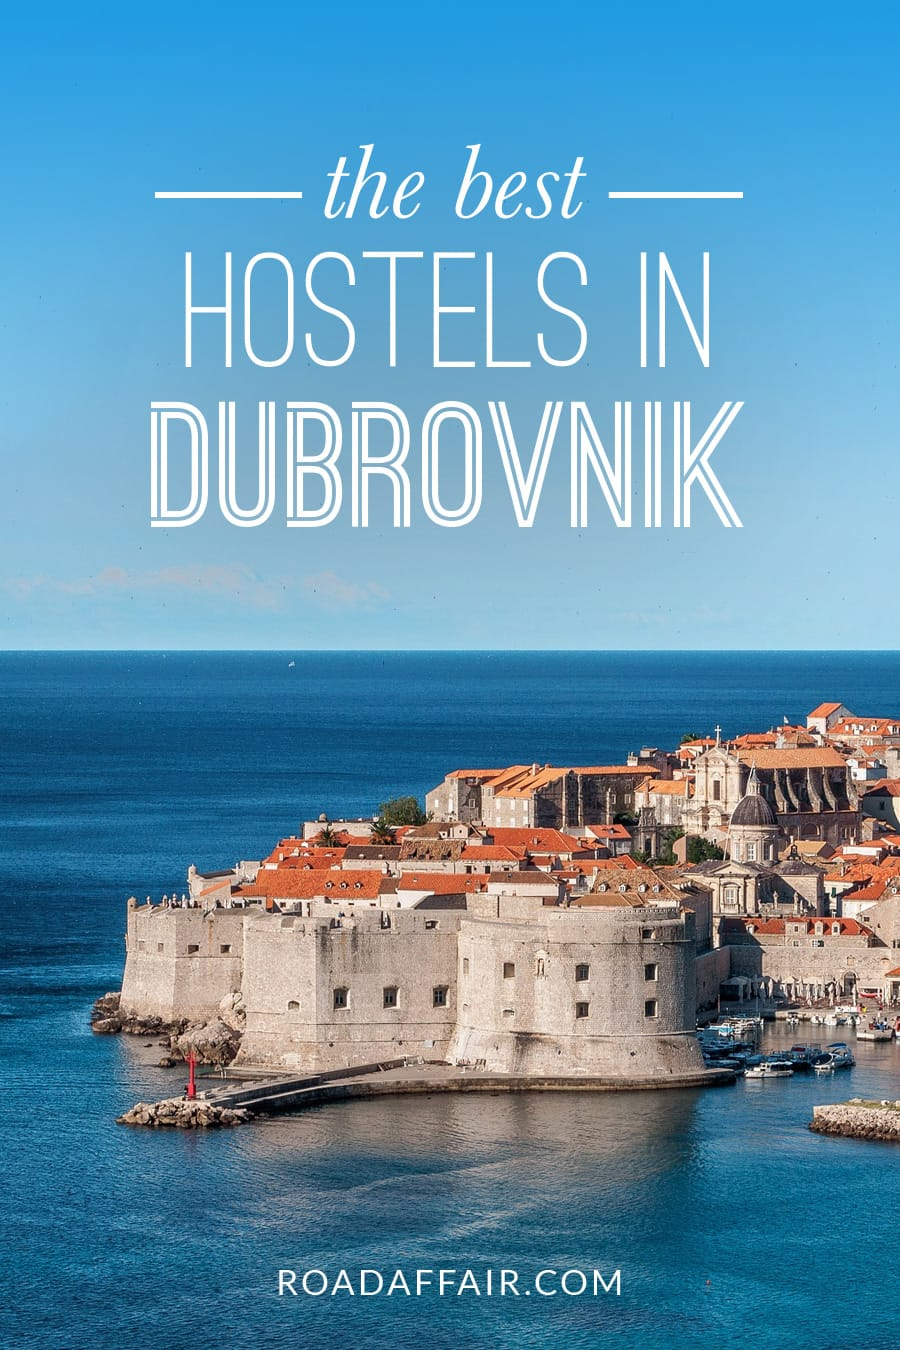 Best Hostels in Dubrovnik, Croatia